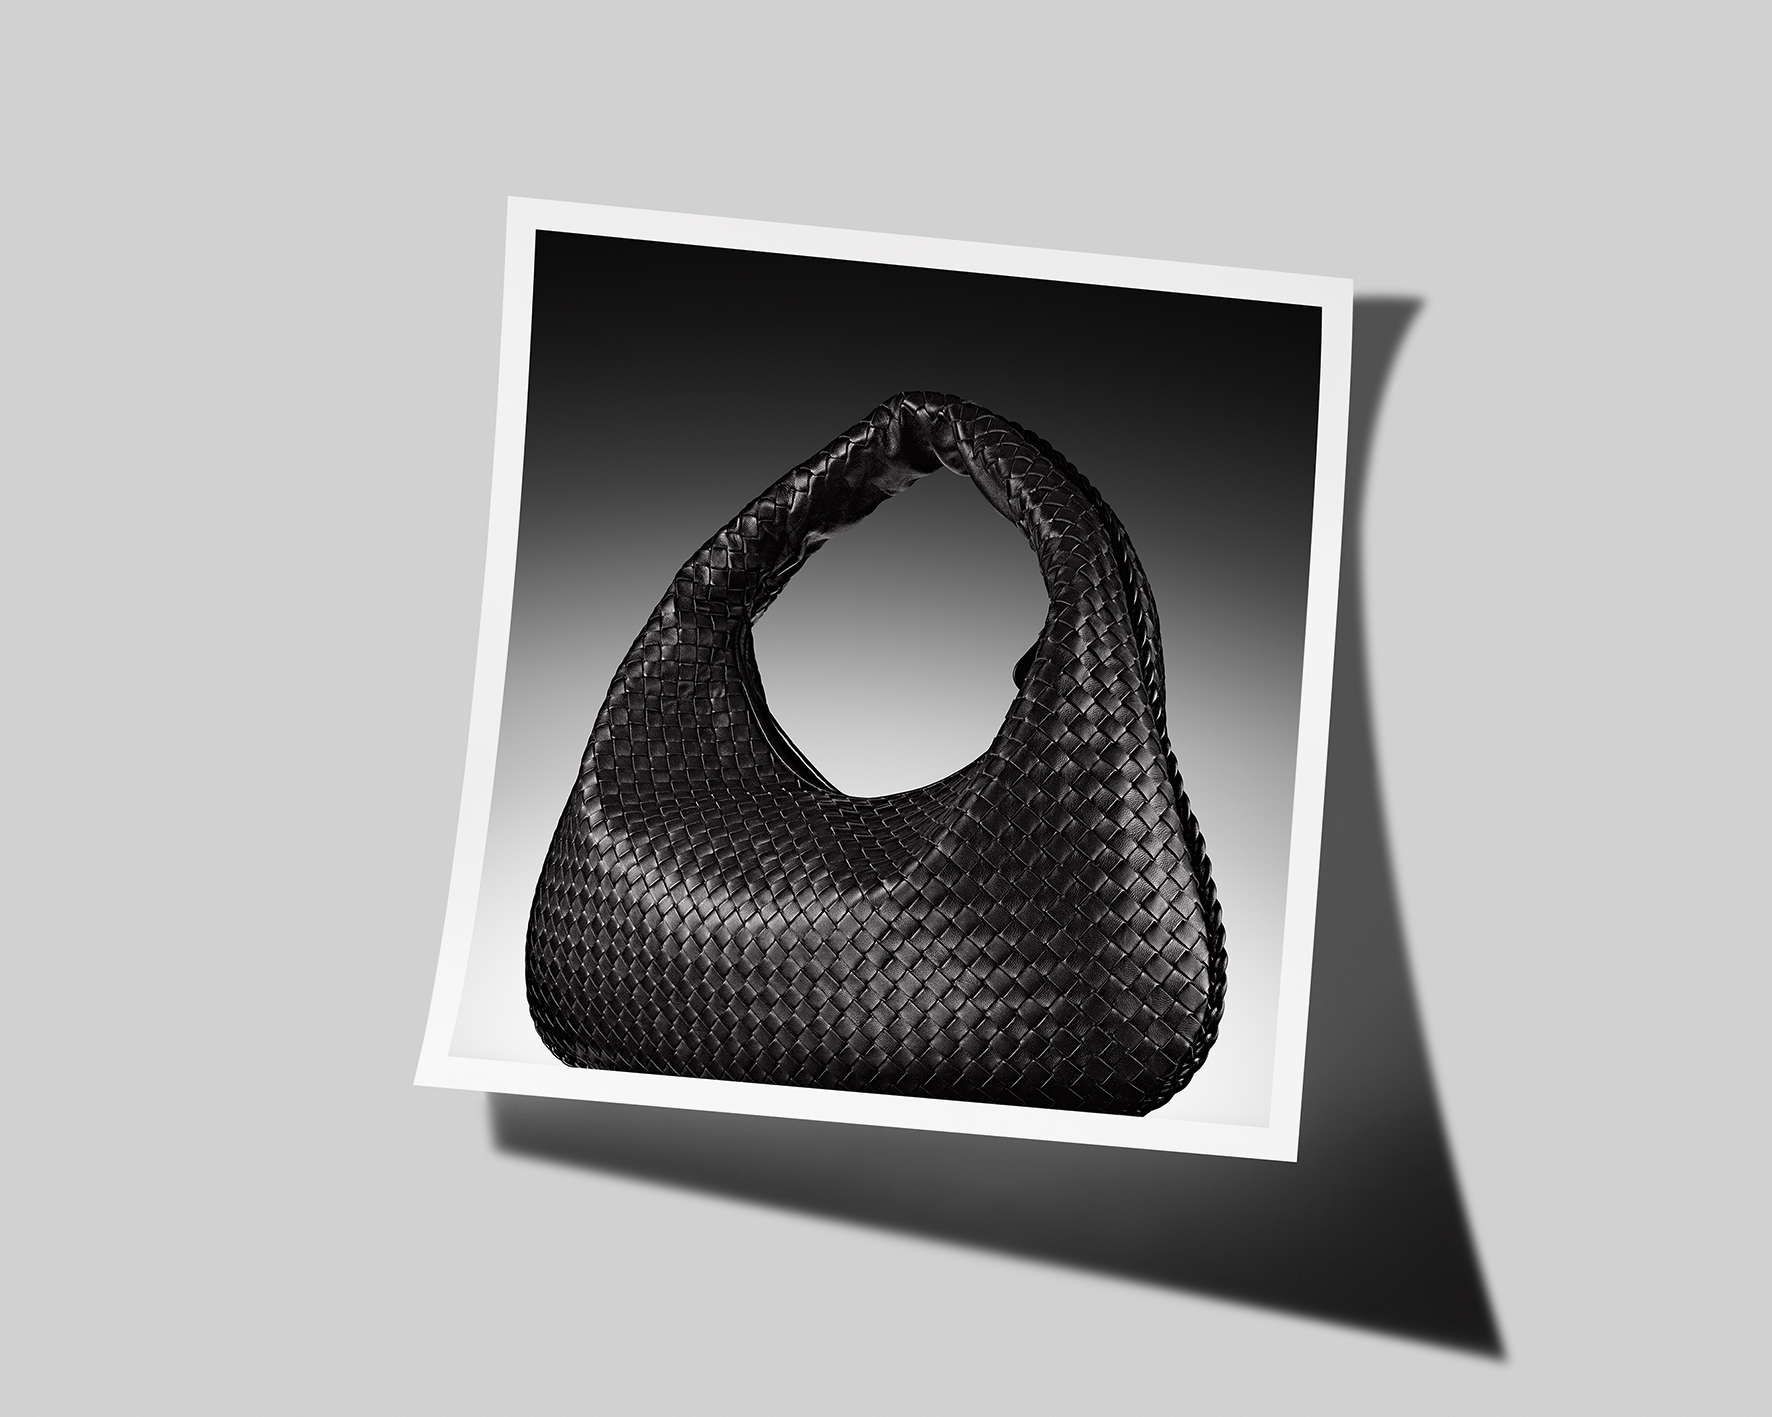 Bottega Veneta: Behind The Intrecciato